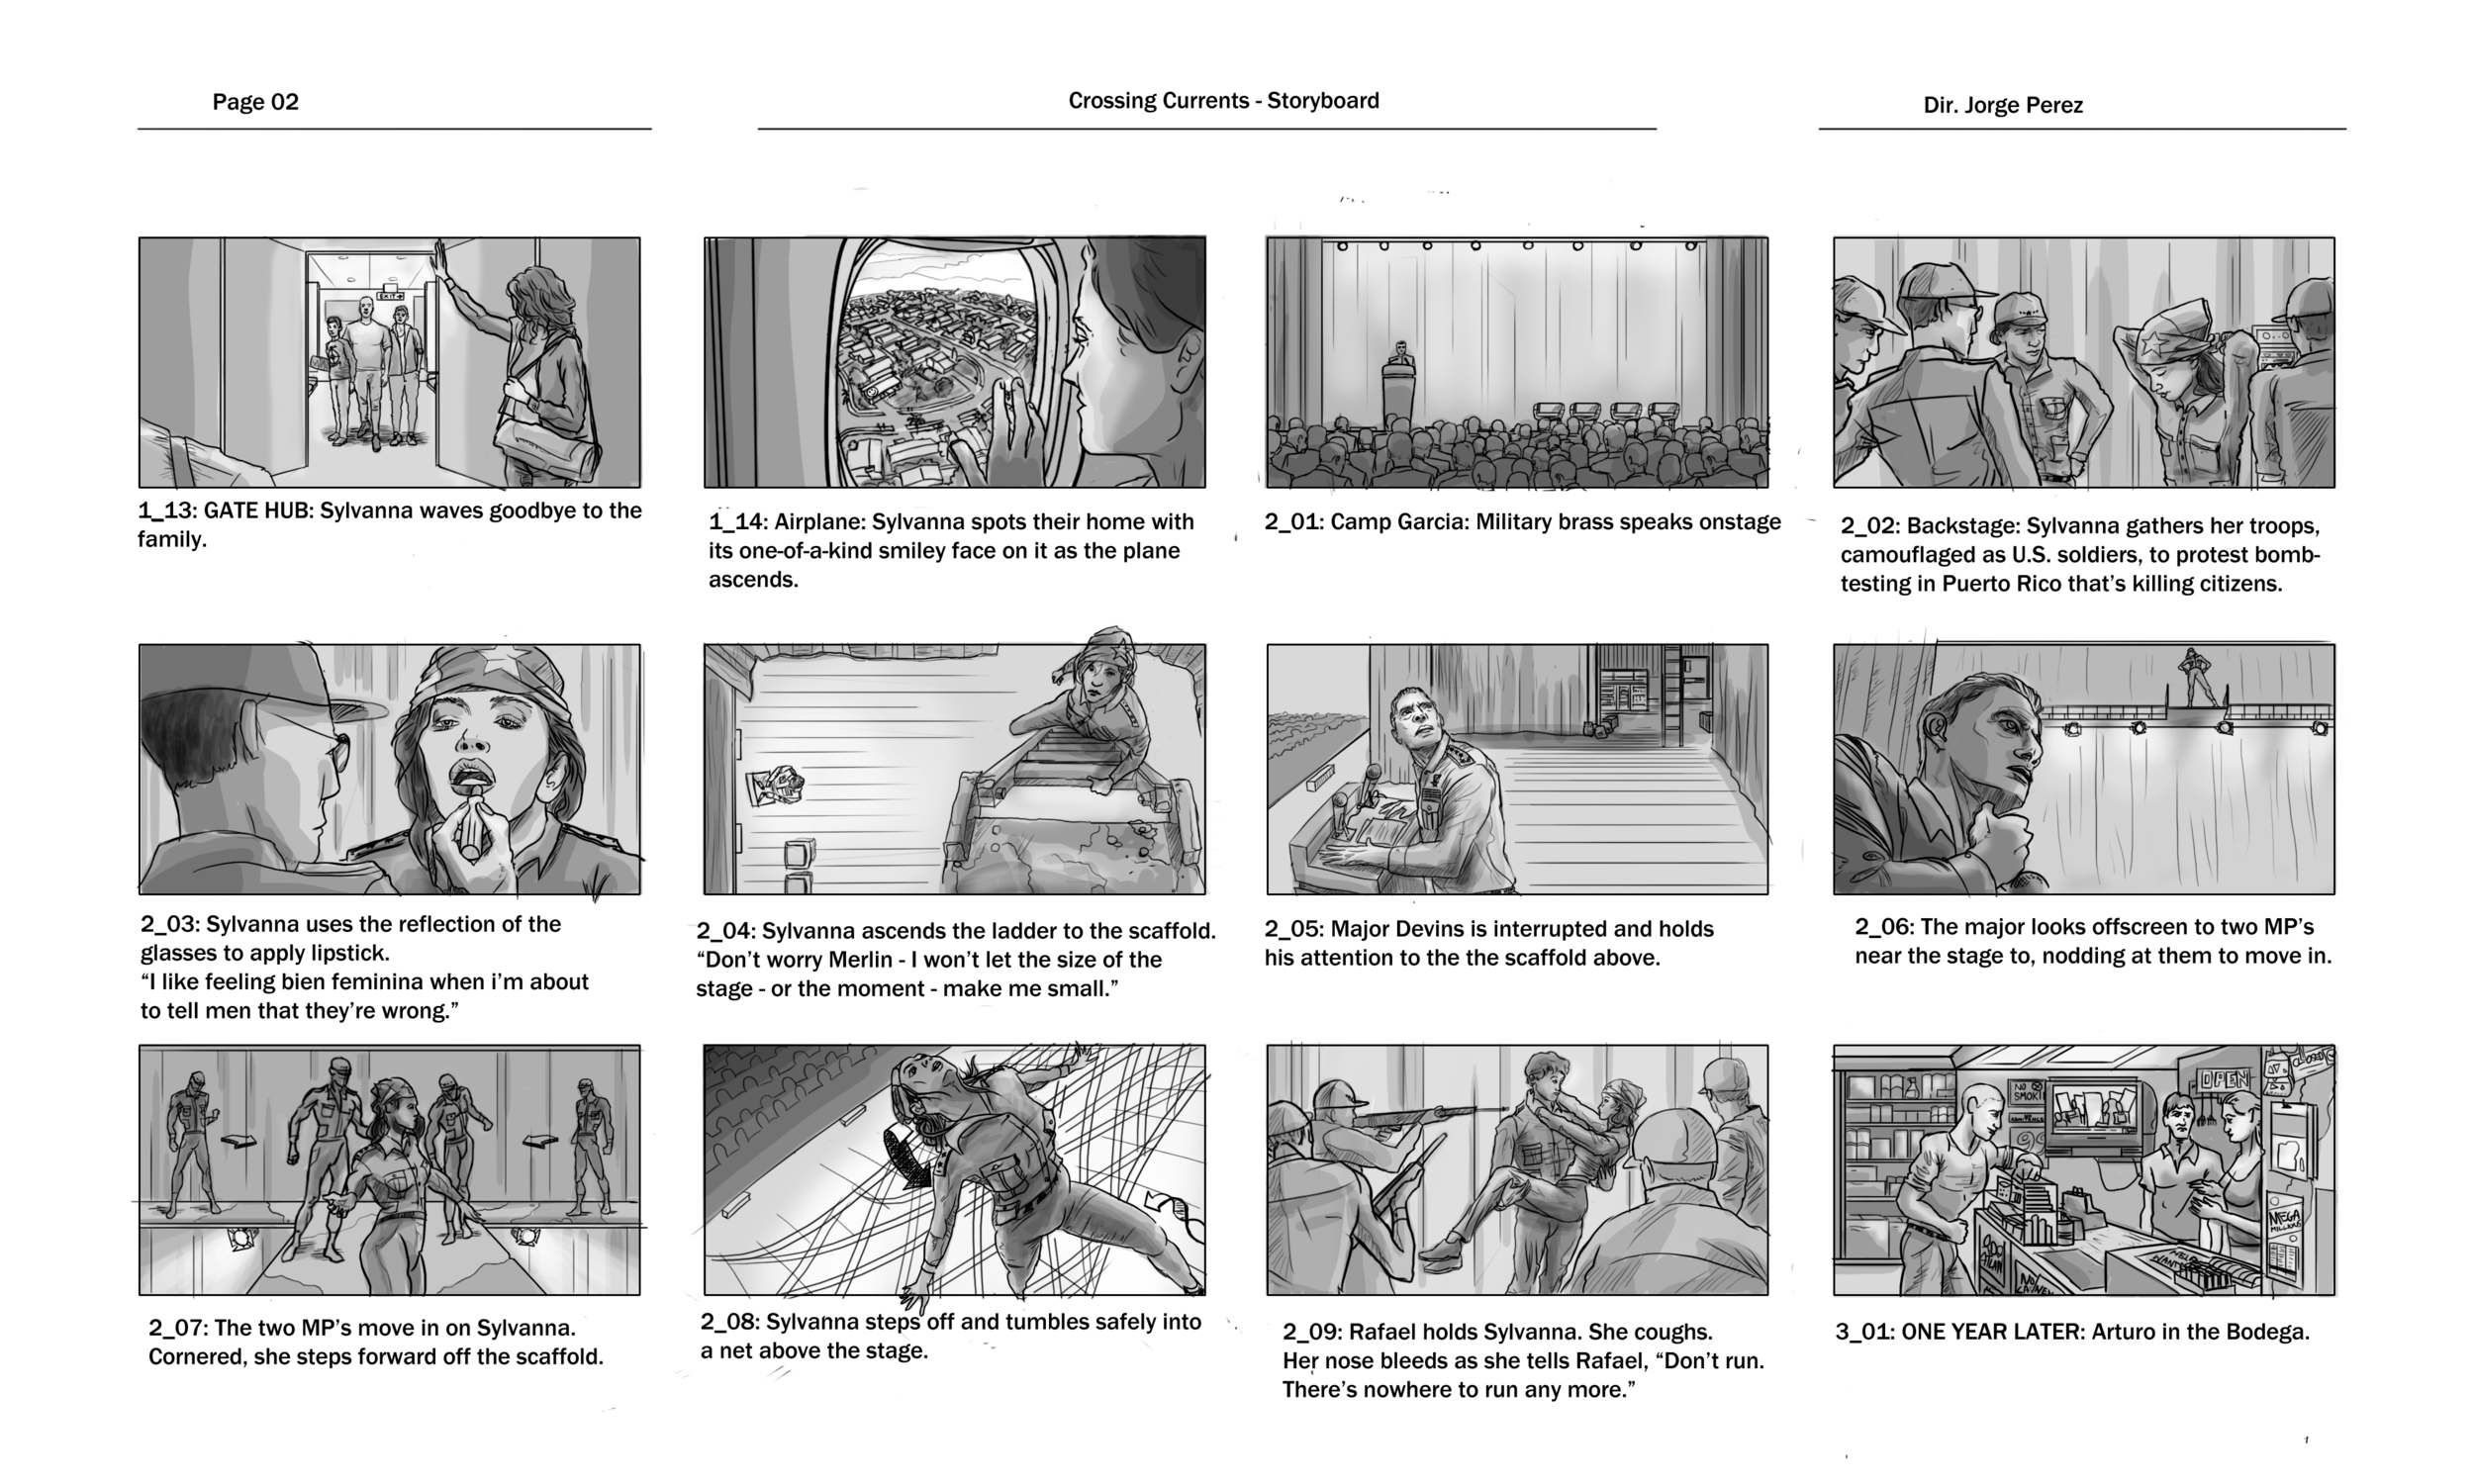 Crossing Currents Storyboard_Final_pg02.png